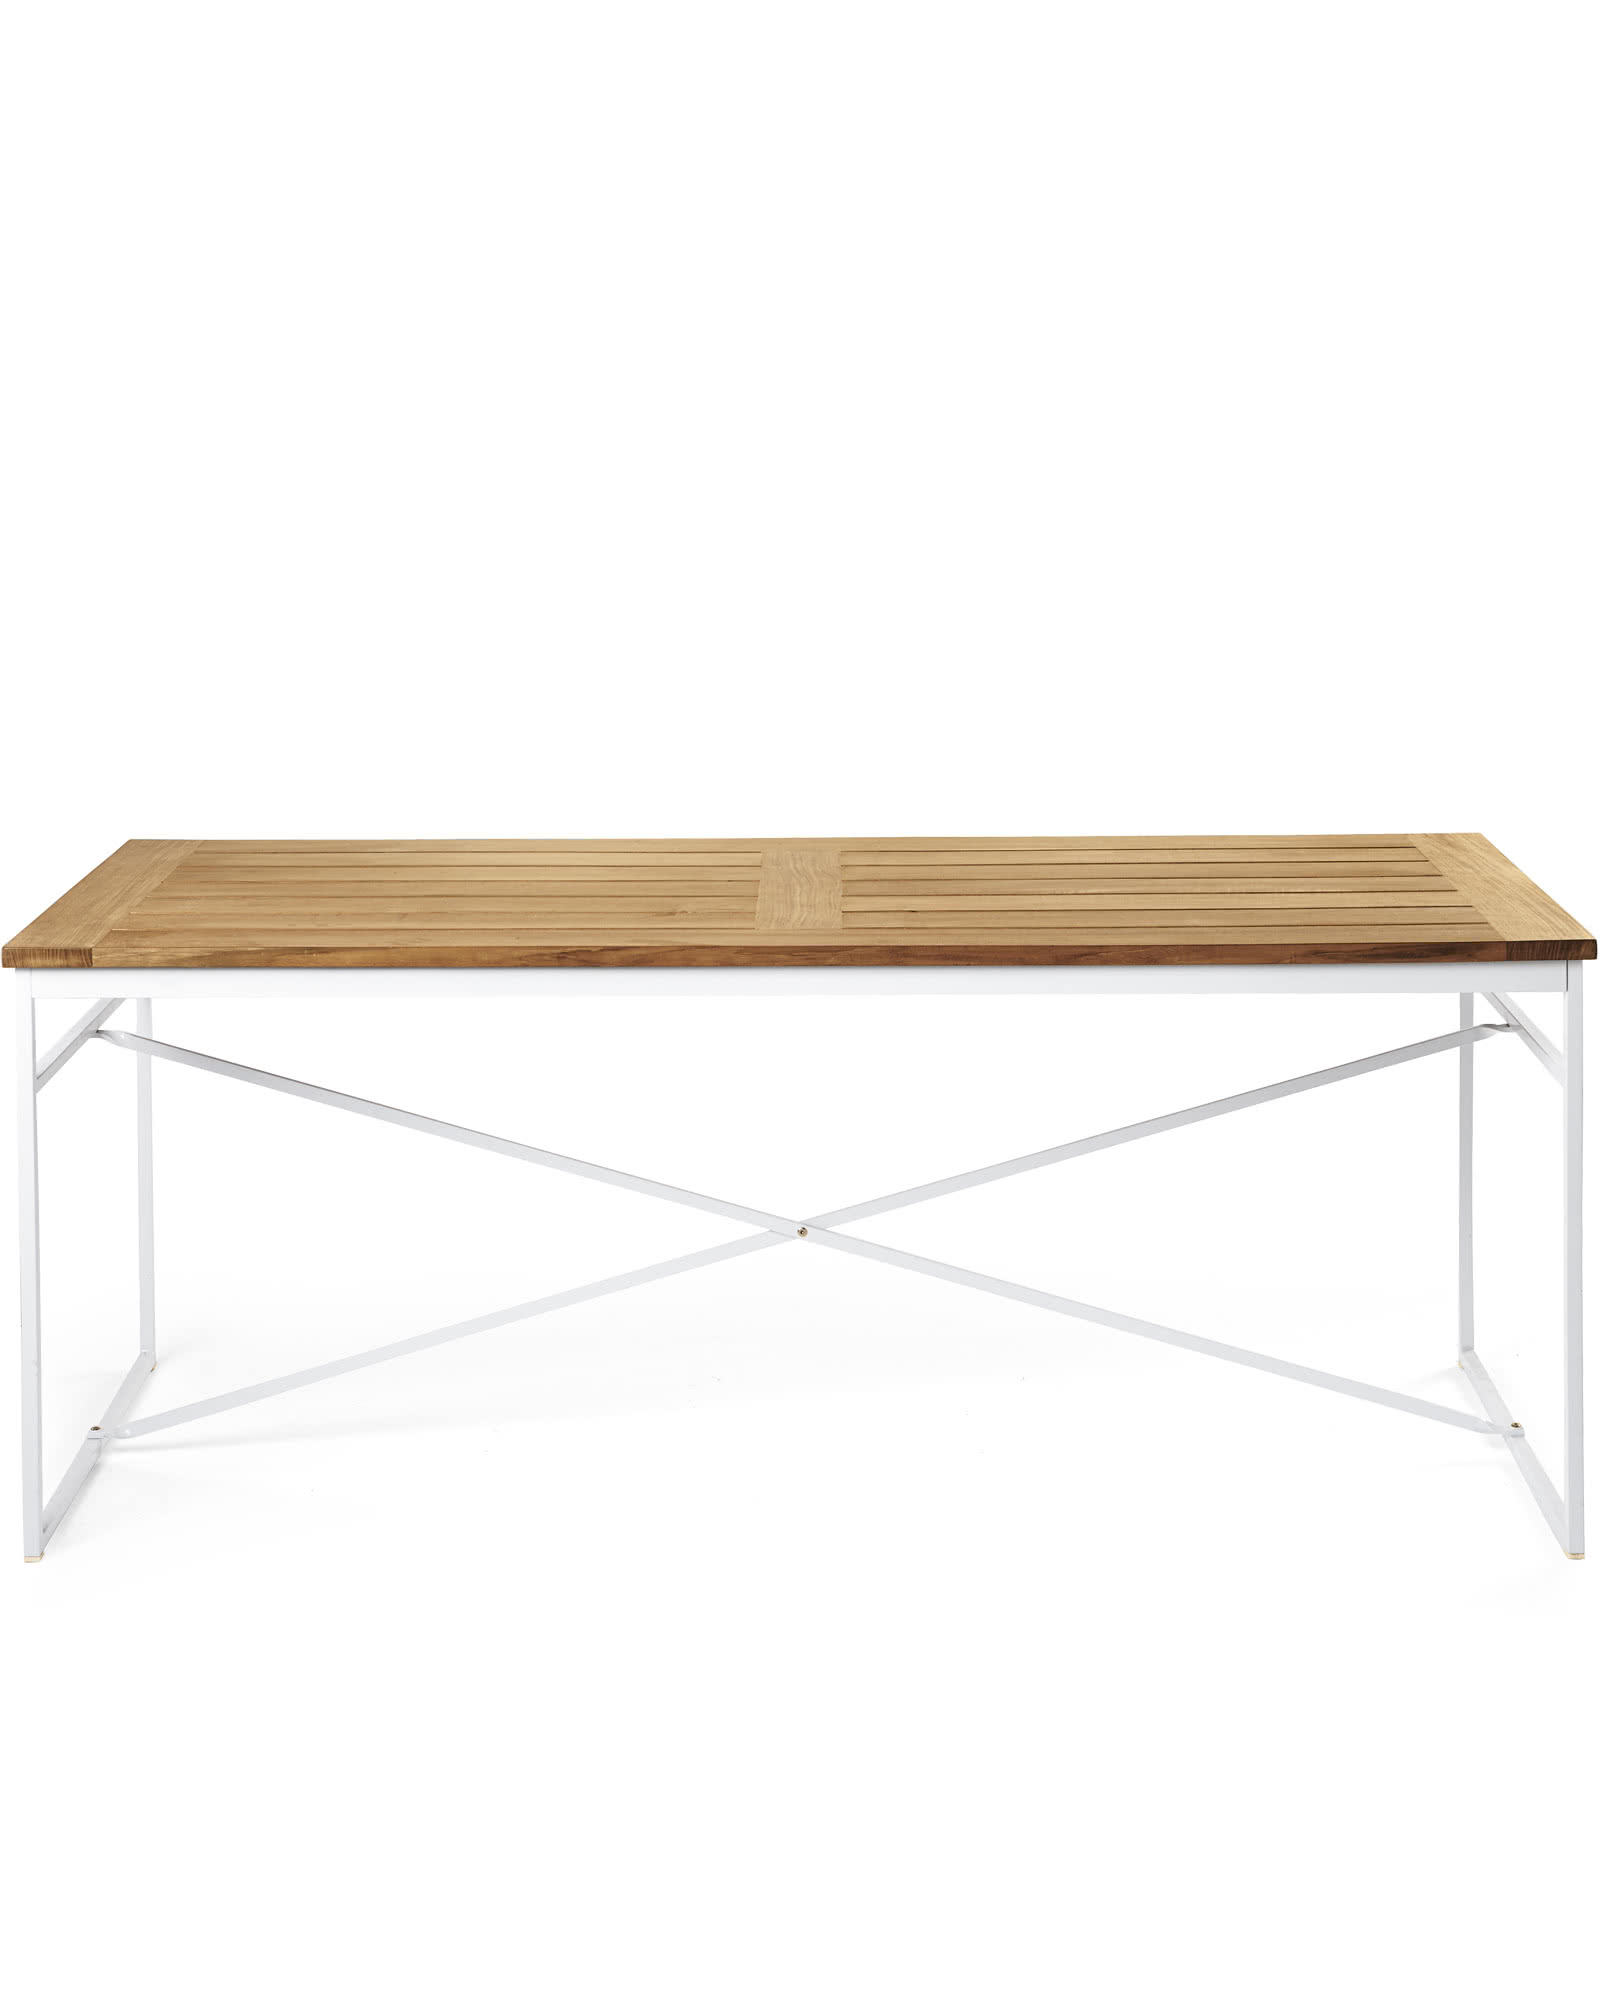 Teak Outdoor Table Serena & Lily